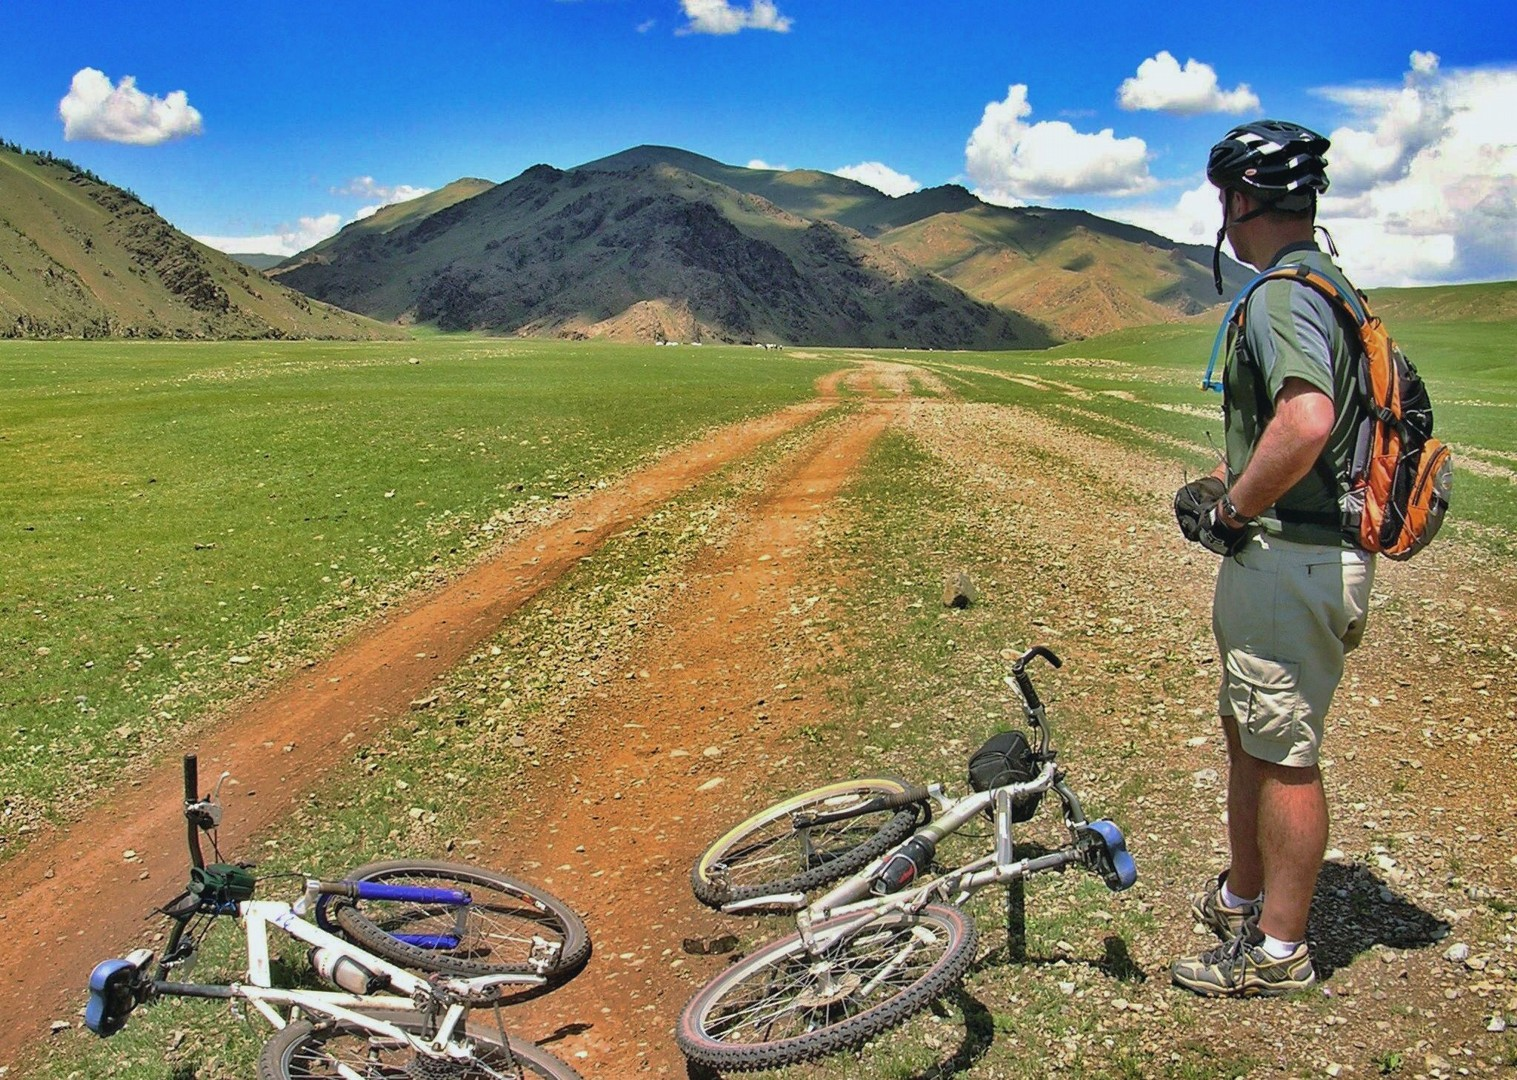 mongolia-cycling-holiday-erdenne-zhu-monastery.jpg - Mongolia - Route of the Nomads - Cycling Holiday - Cycling Adventures